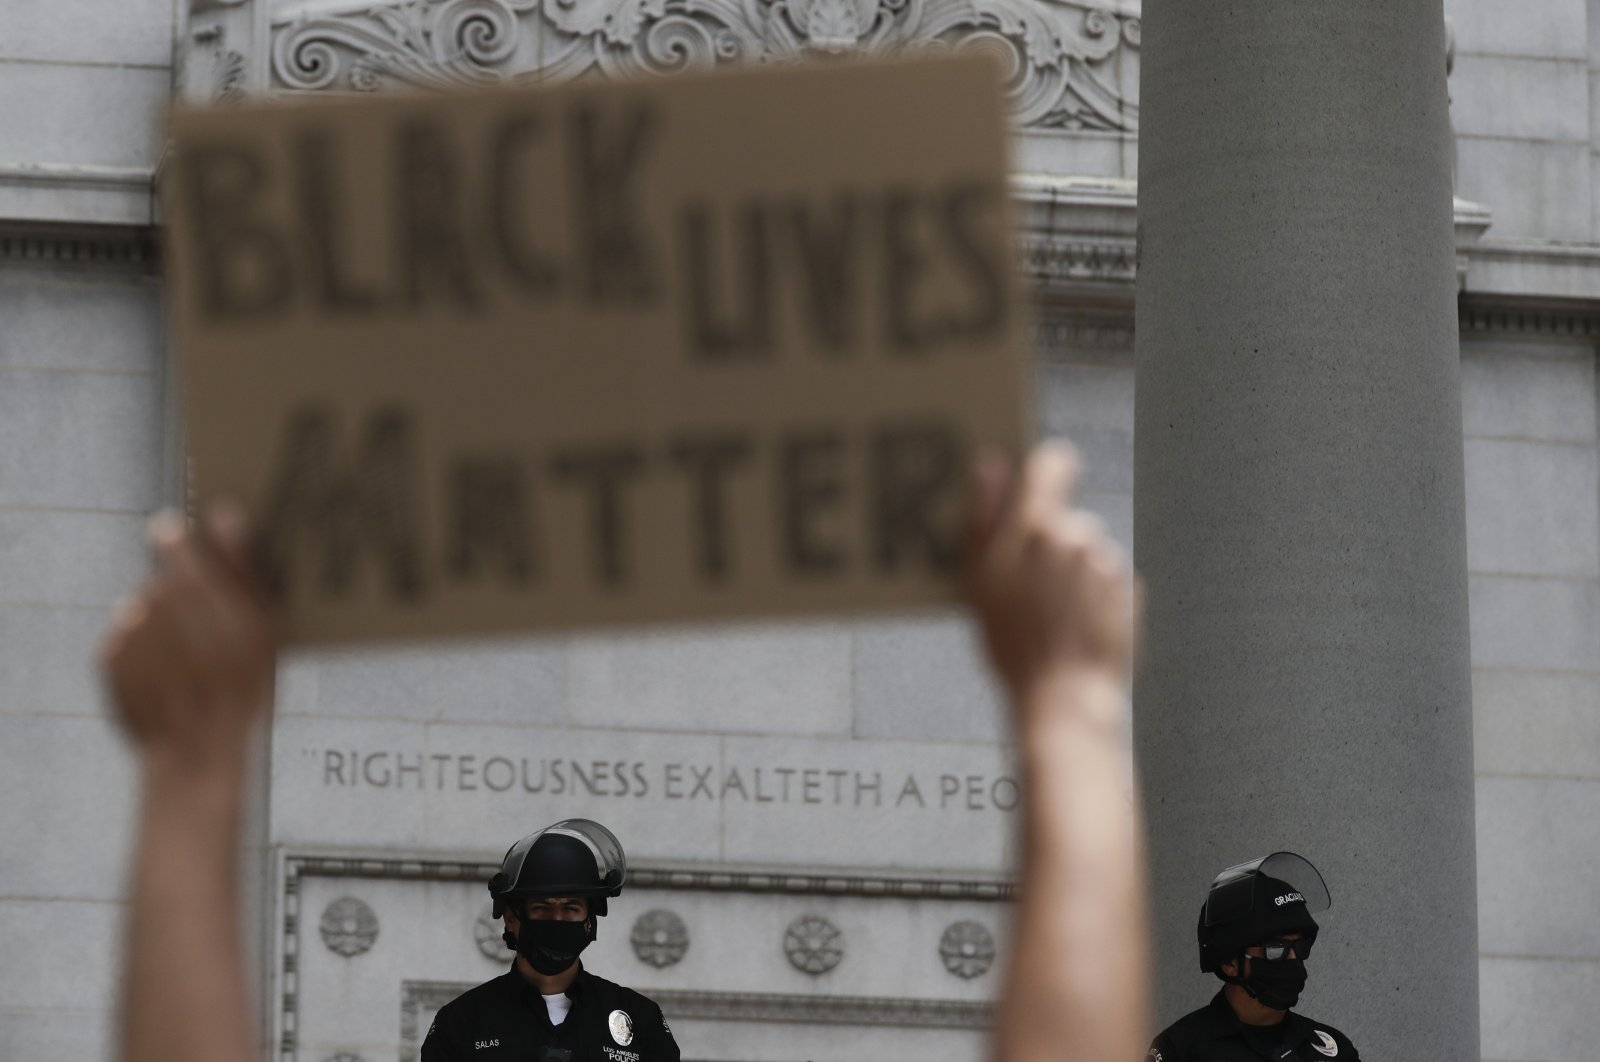 A man holds up a sign in front of police officers during a protest, in Los Angeles, California, June 2, 2020. (AP Photo)